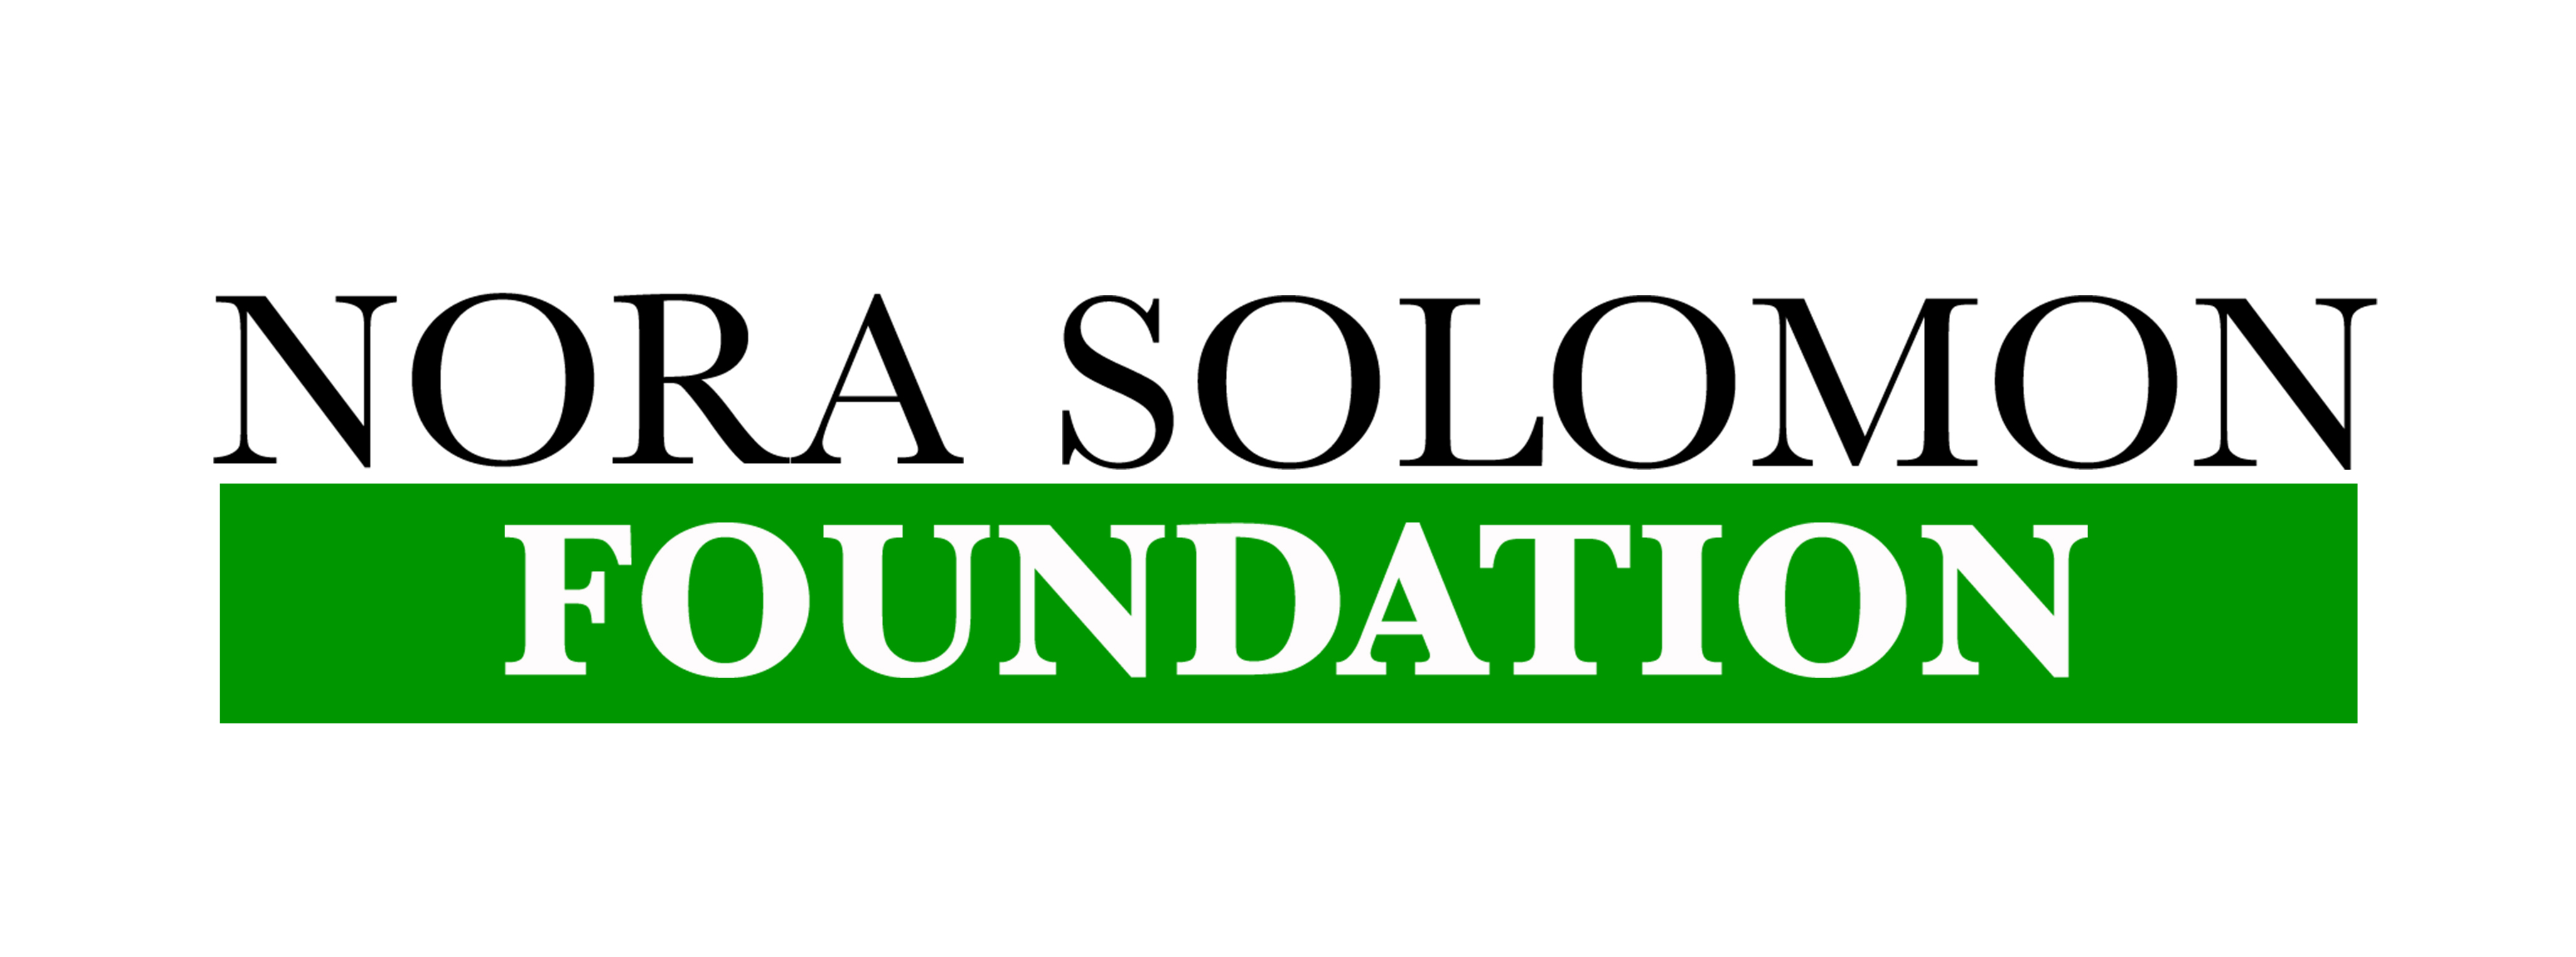 Nora Solomon Foundation